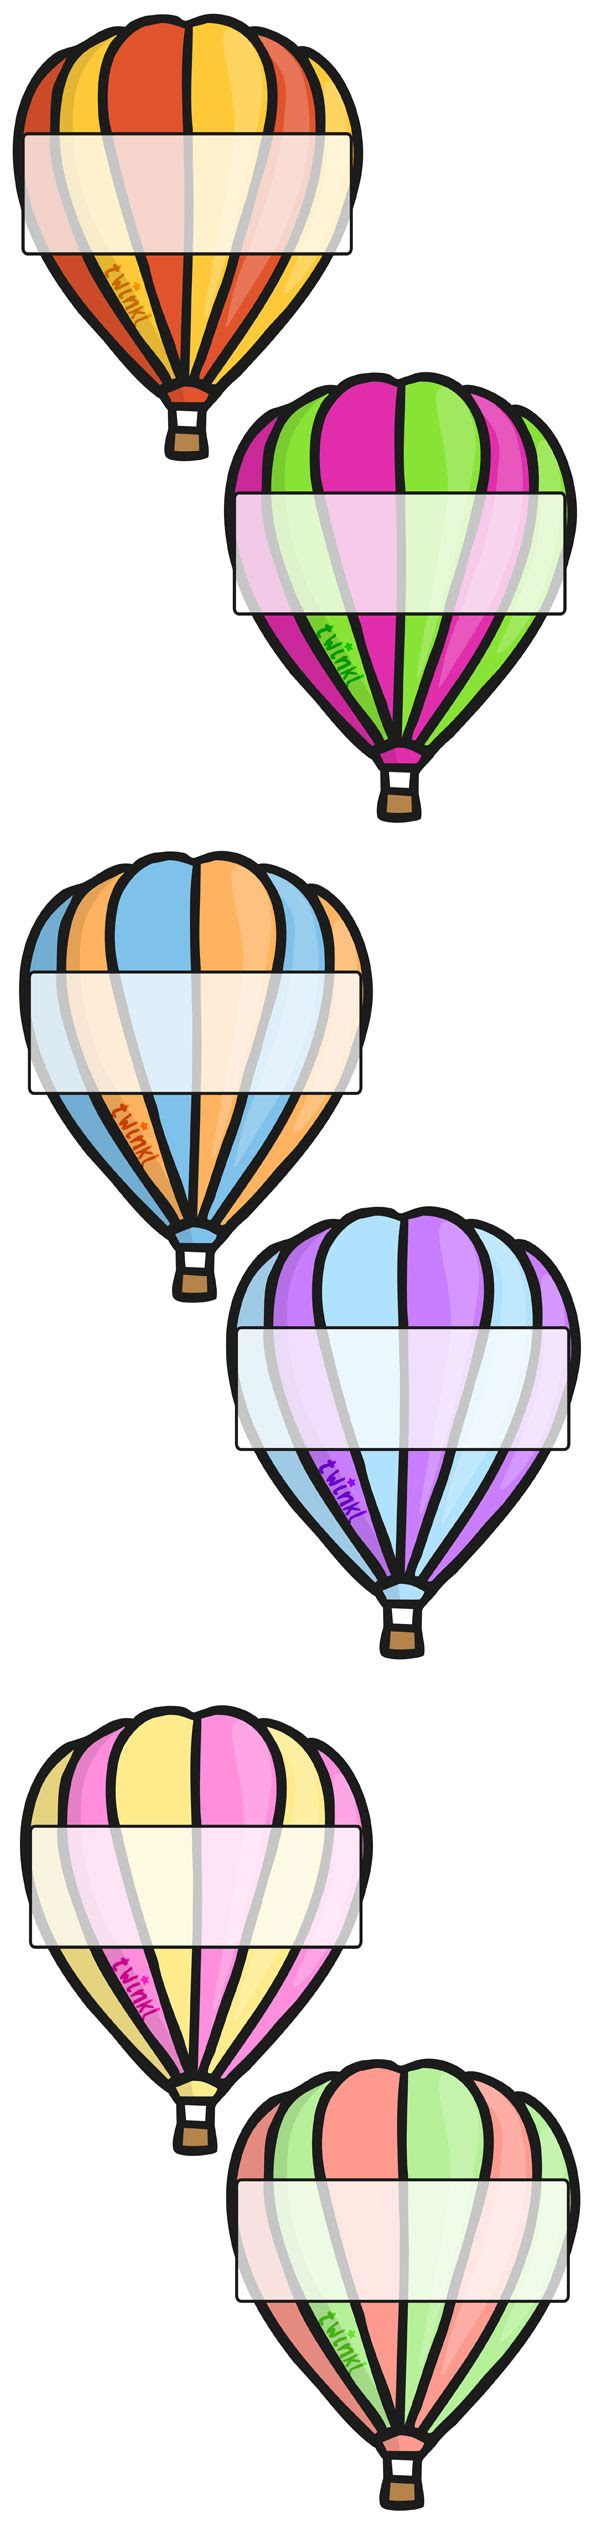 Twinkl Resources >> Hot Air Balloons 2 Per A4 Editable Box …' title='Twinkl Resources >> Hot Air Balloons 2 Per A4 Editable Box …' width='auto' height='auto'/> </p> </div> <div class=